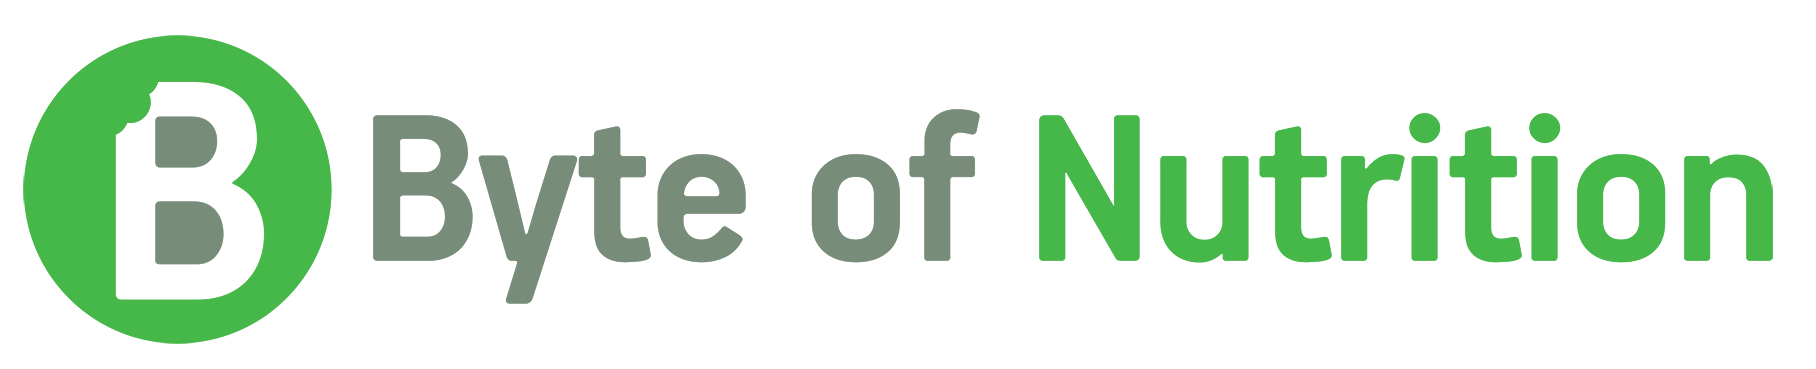 Green Letter B with a bite taken out - logo for Byte of Nutrition